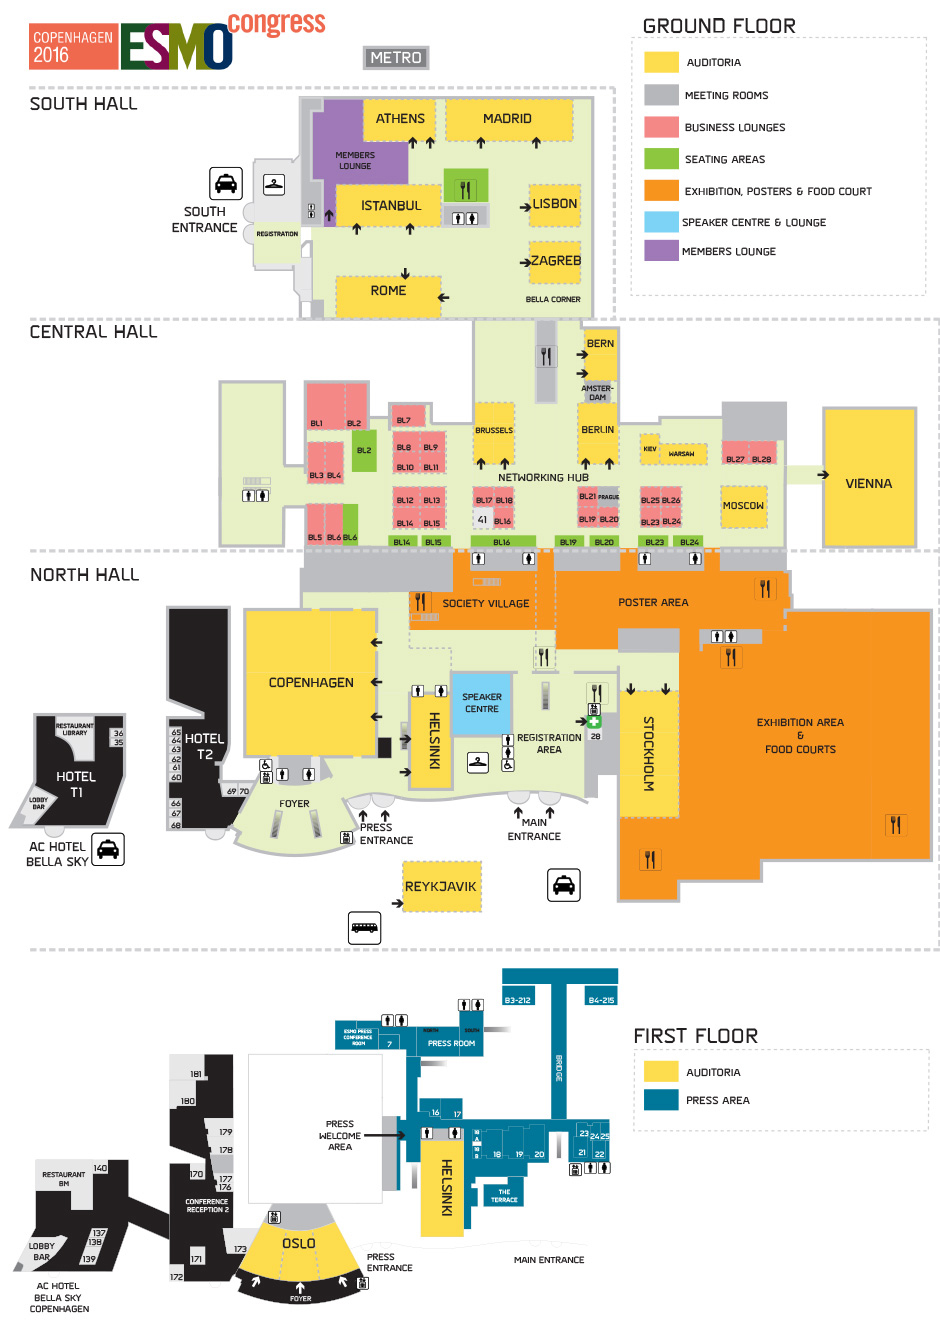 ESMO 2016 Congress Venue Floorplan